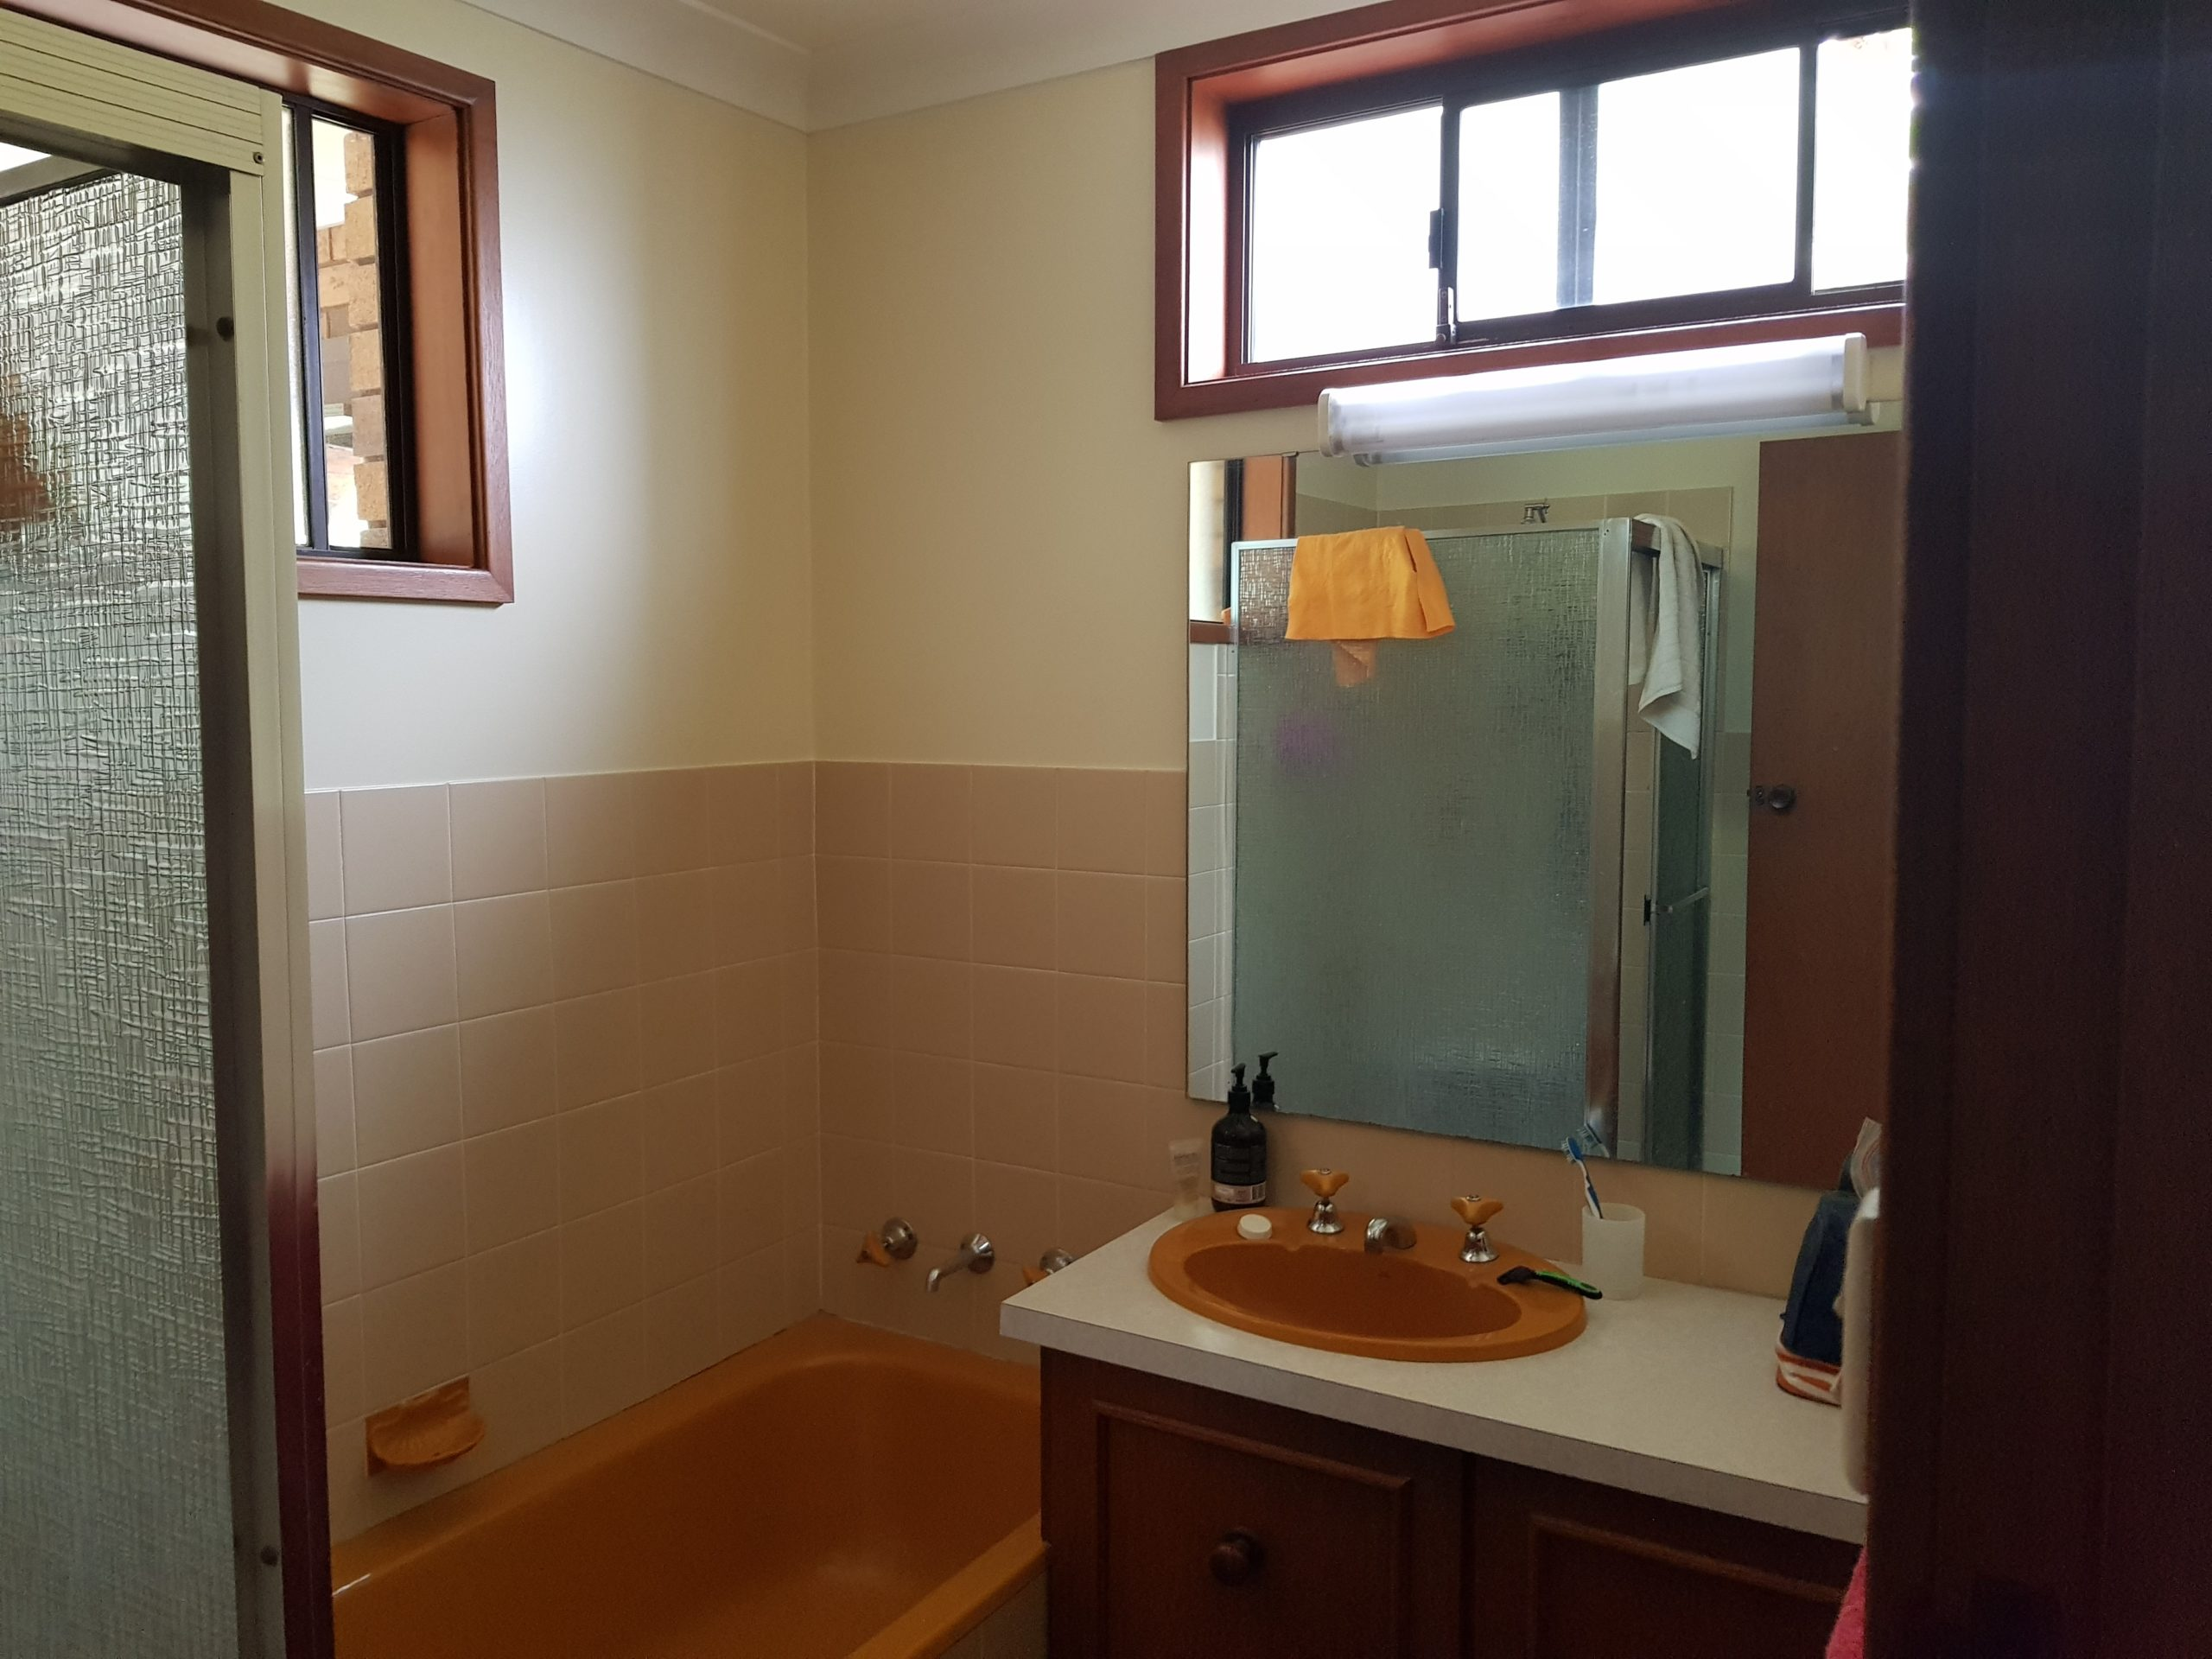 Bathroom and laundry renovation before we started working on the east maitland property